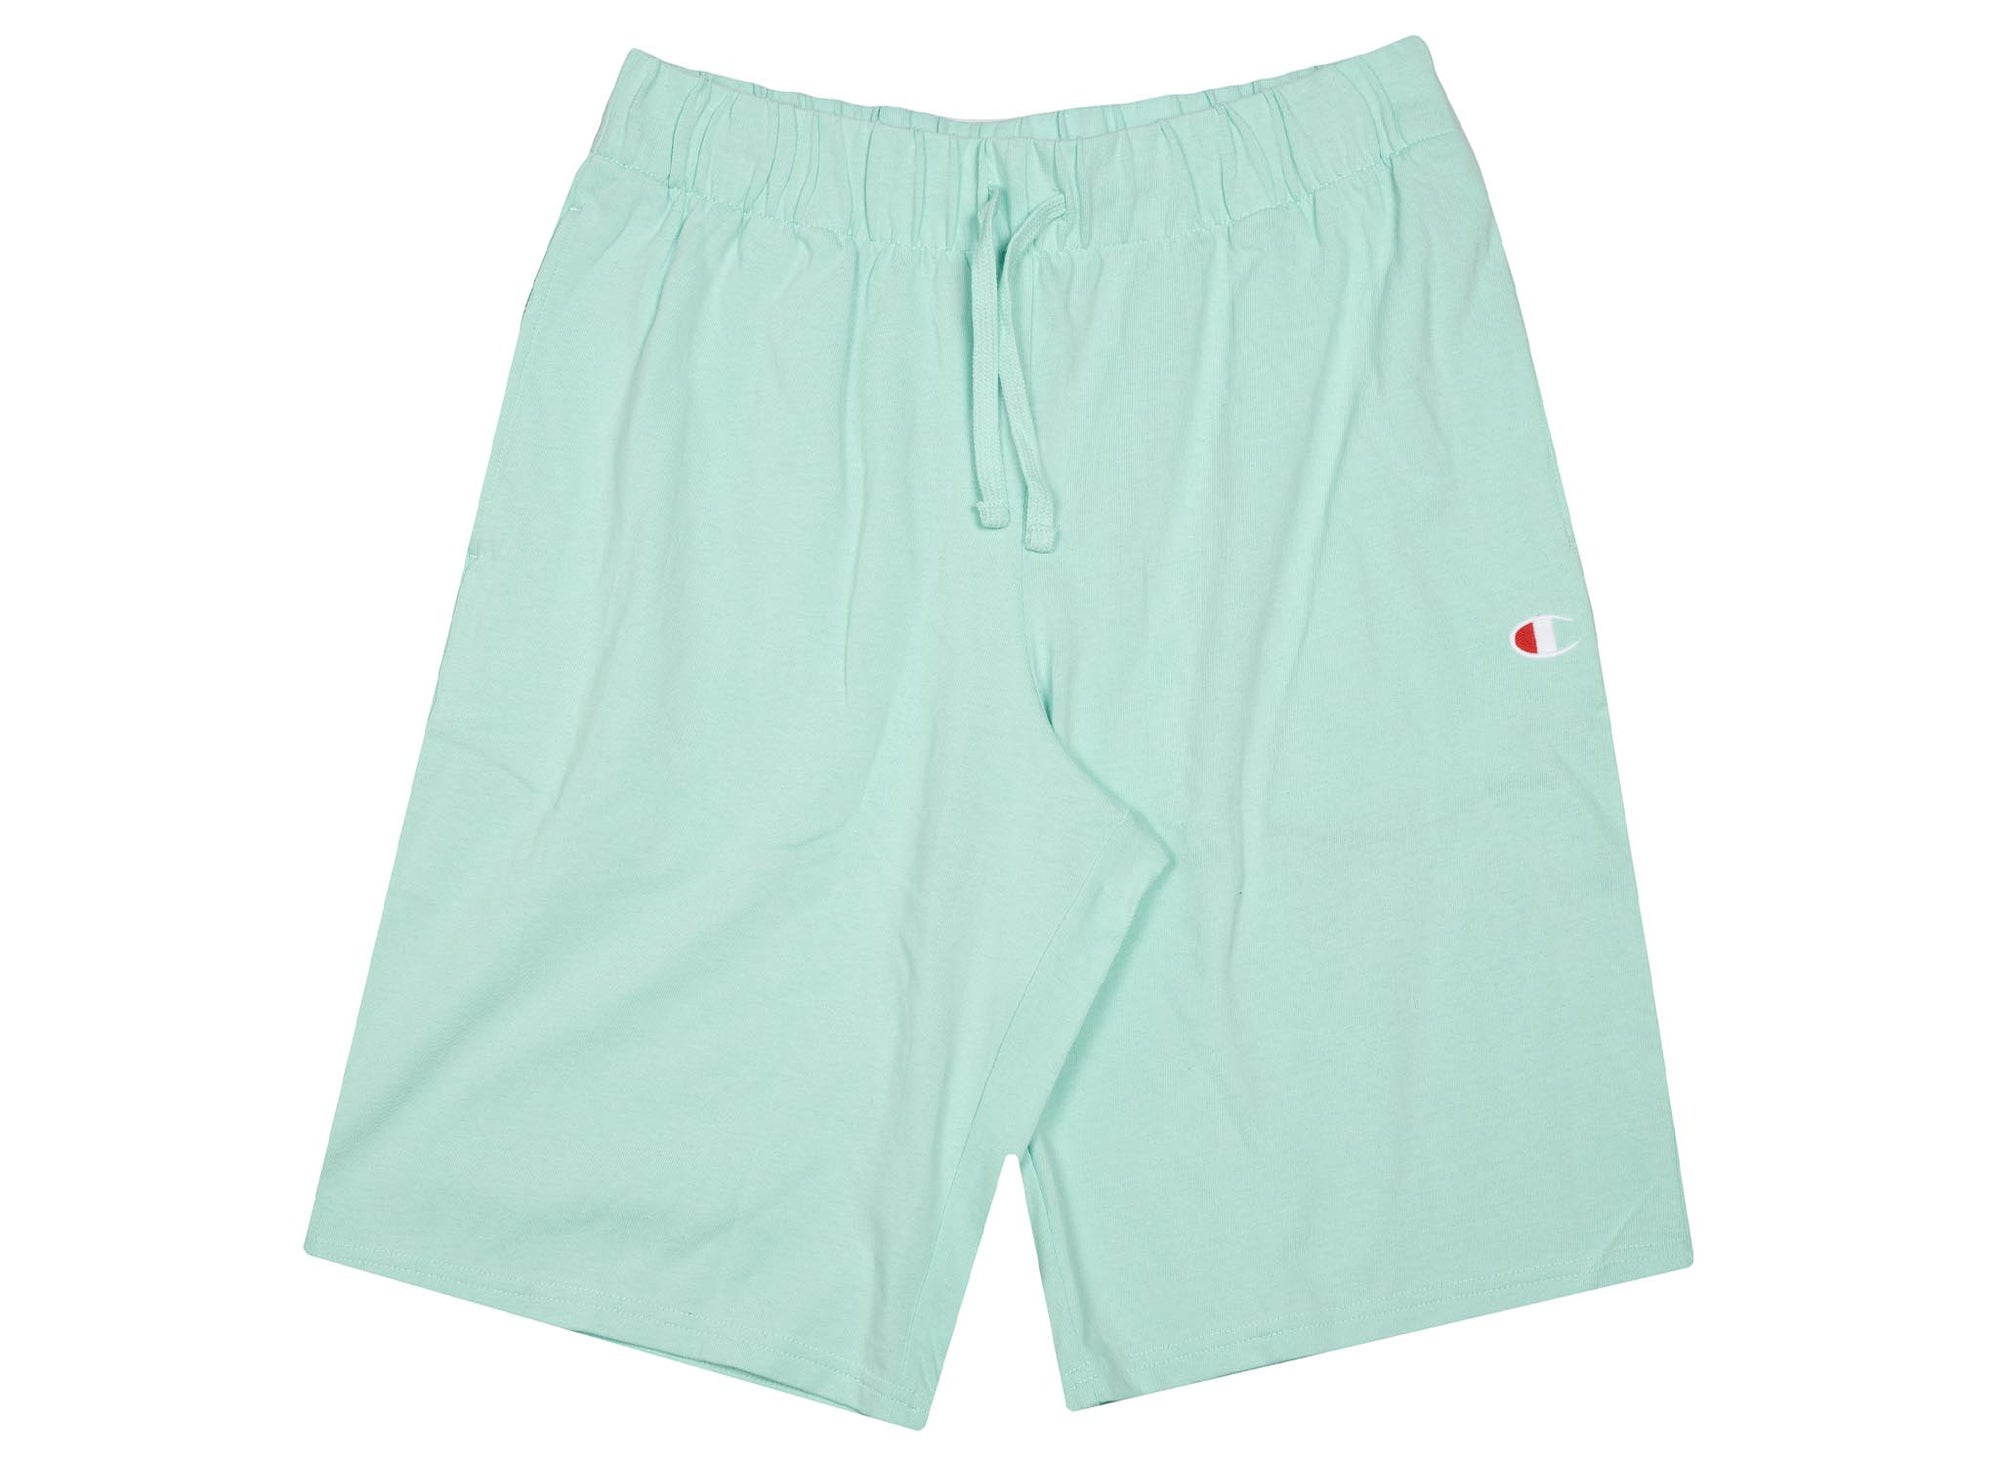 Champion Men's Jersey Jam Shorts - Waterfall Green